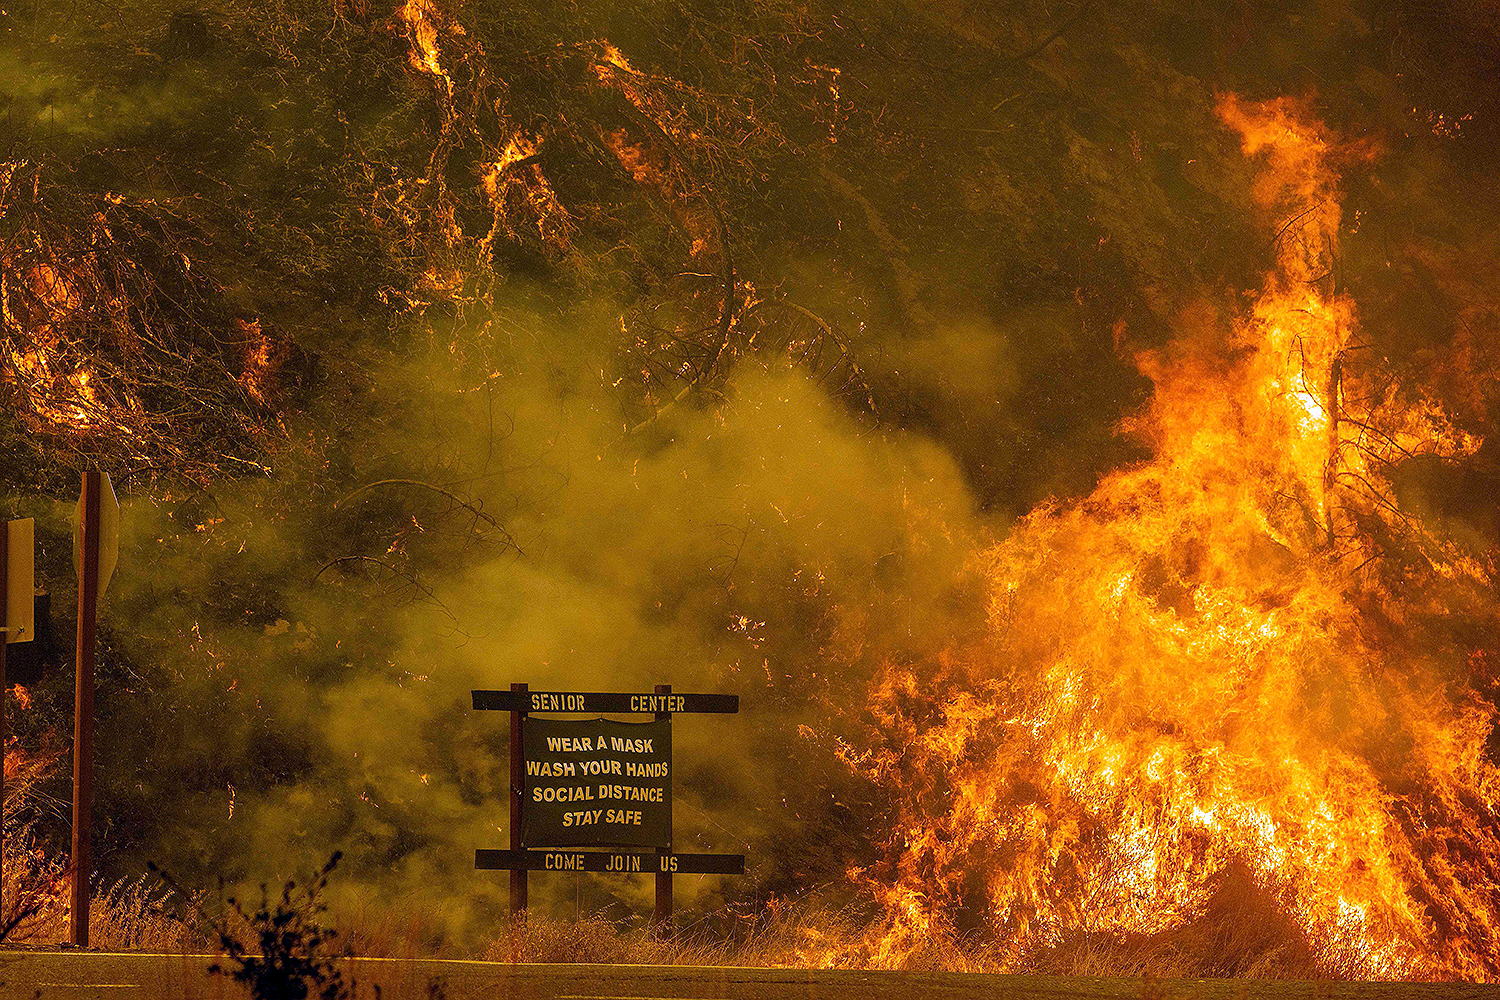 A sign warning people about COVID-19 is surrounded by flames during a fire near Lake Berryessa in Napa, California, on Aug. 18. JOSH EDELSON/AFP via Getty Images